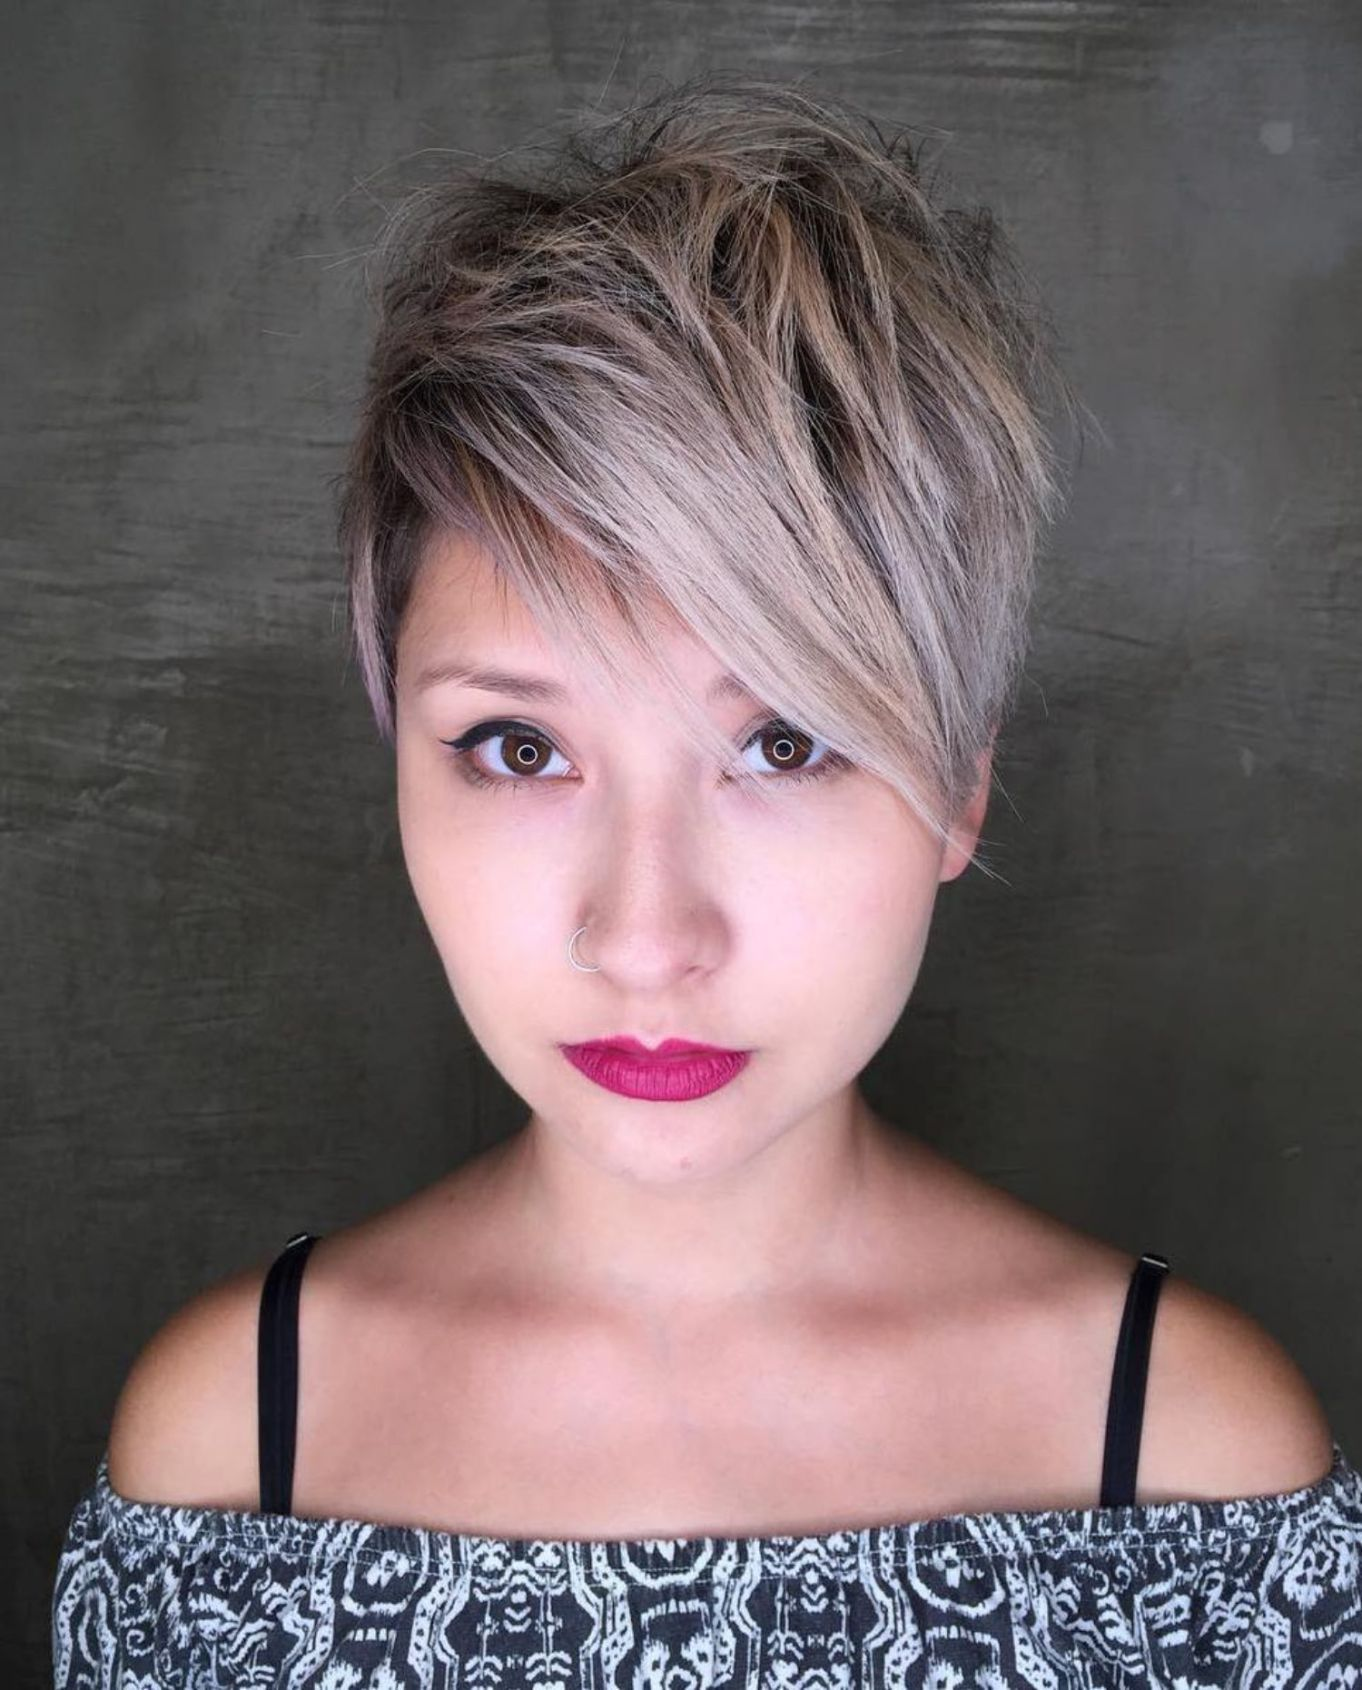 Choppy Pixie With Side Bangs | Short hair styles, Round face haircuts, Short hair styles for ...